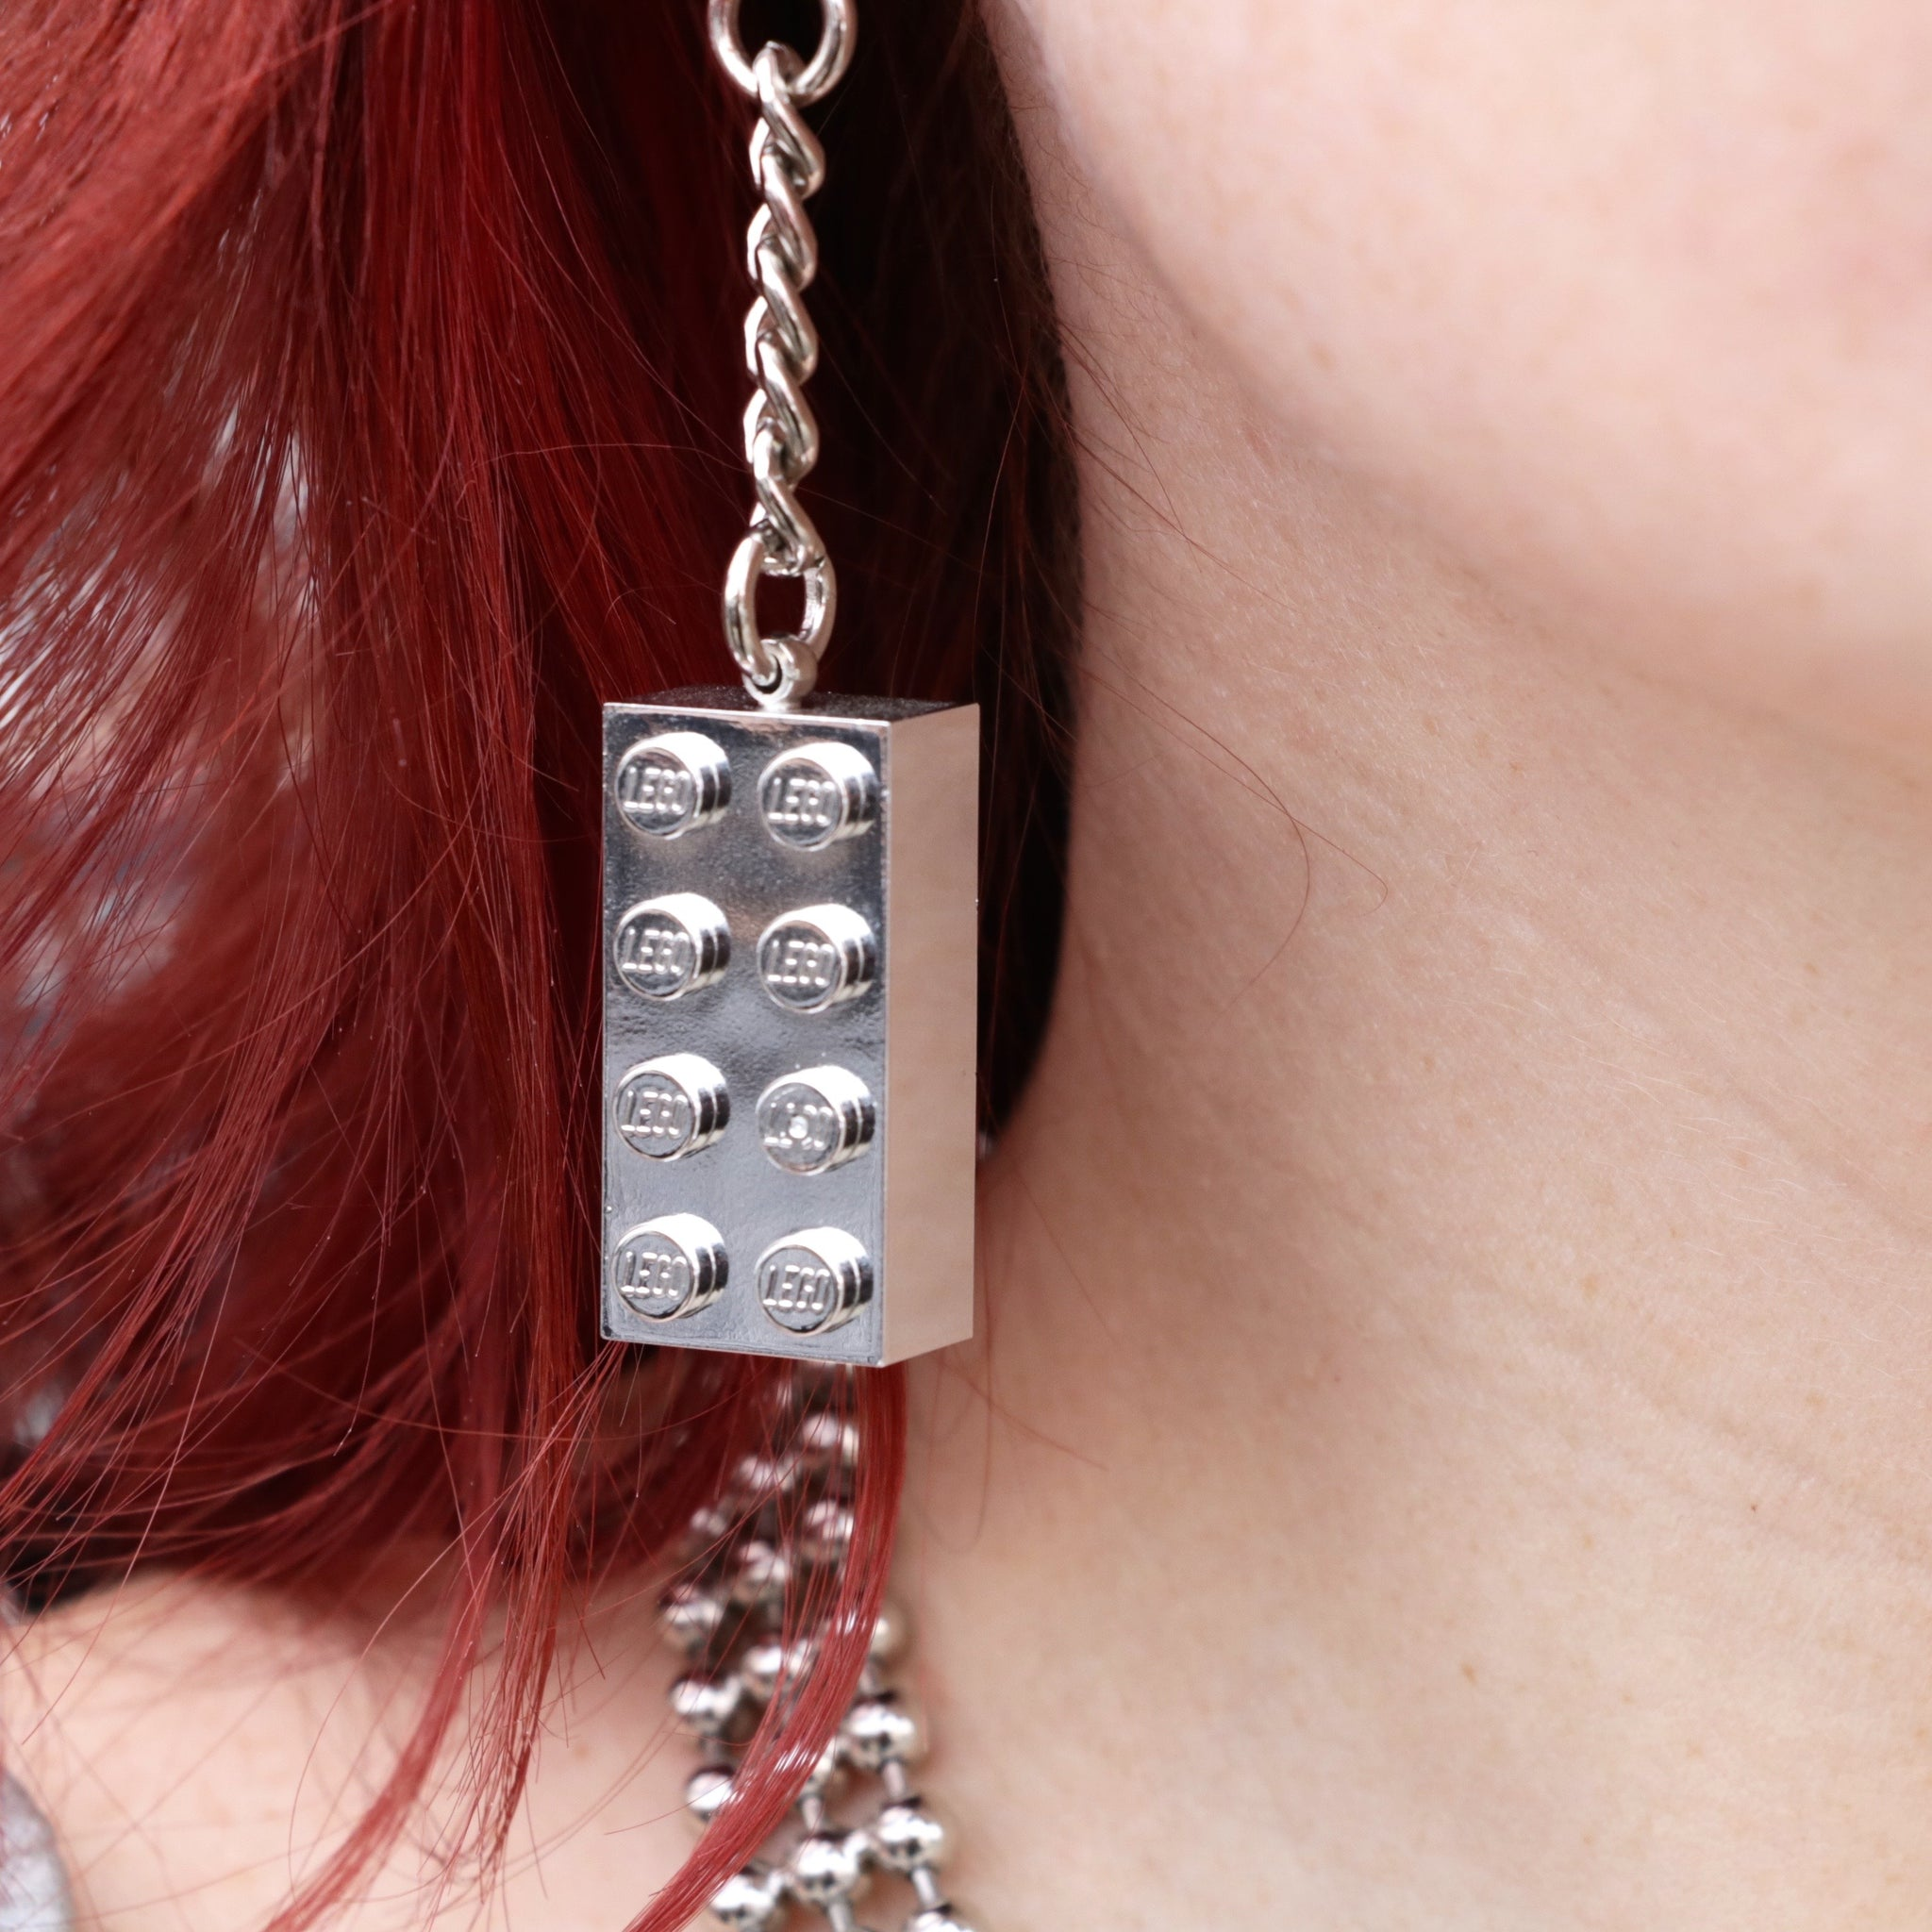 Silver Chrome Lego Earrings